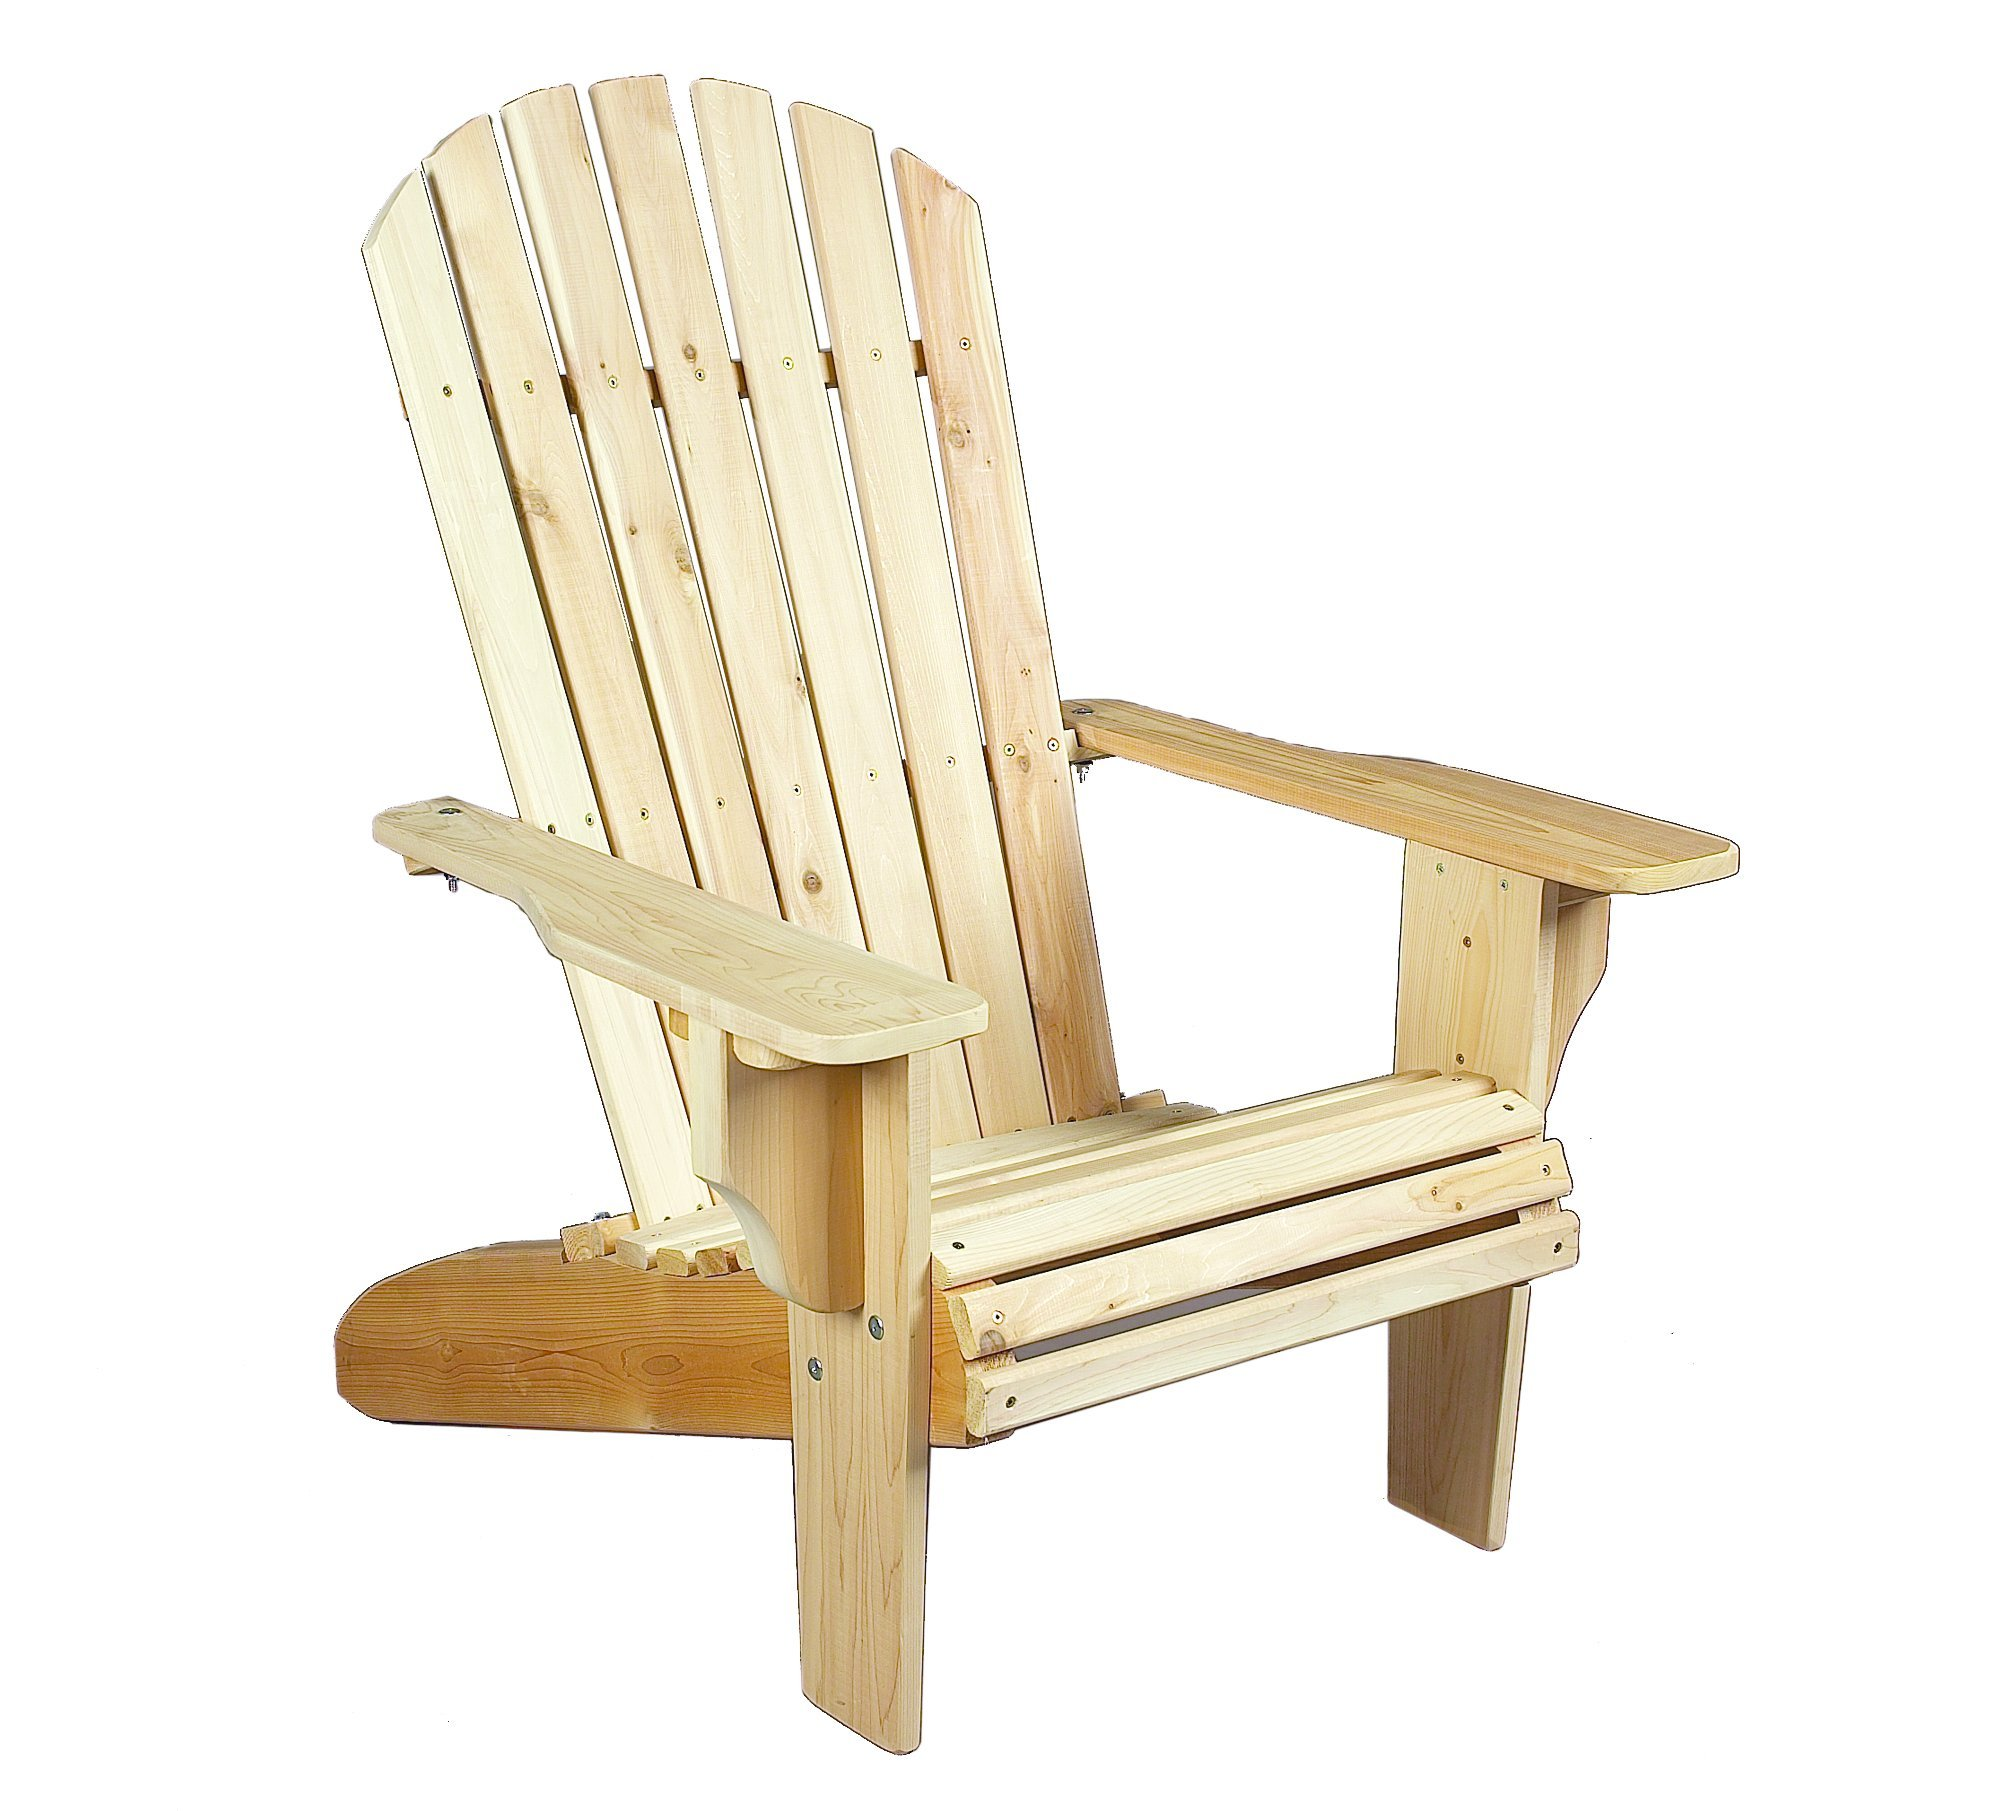 Cedarlooks 040404A Deluxe Adirondack Chair - Deluxe adirondack chair Solid cedar construction ensures years of maintenance free use. Can be painted, stained or left to wether to a natural silver grey. - patio-furniture, patio-chairs, patio - 81gHmJ53VqL -